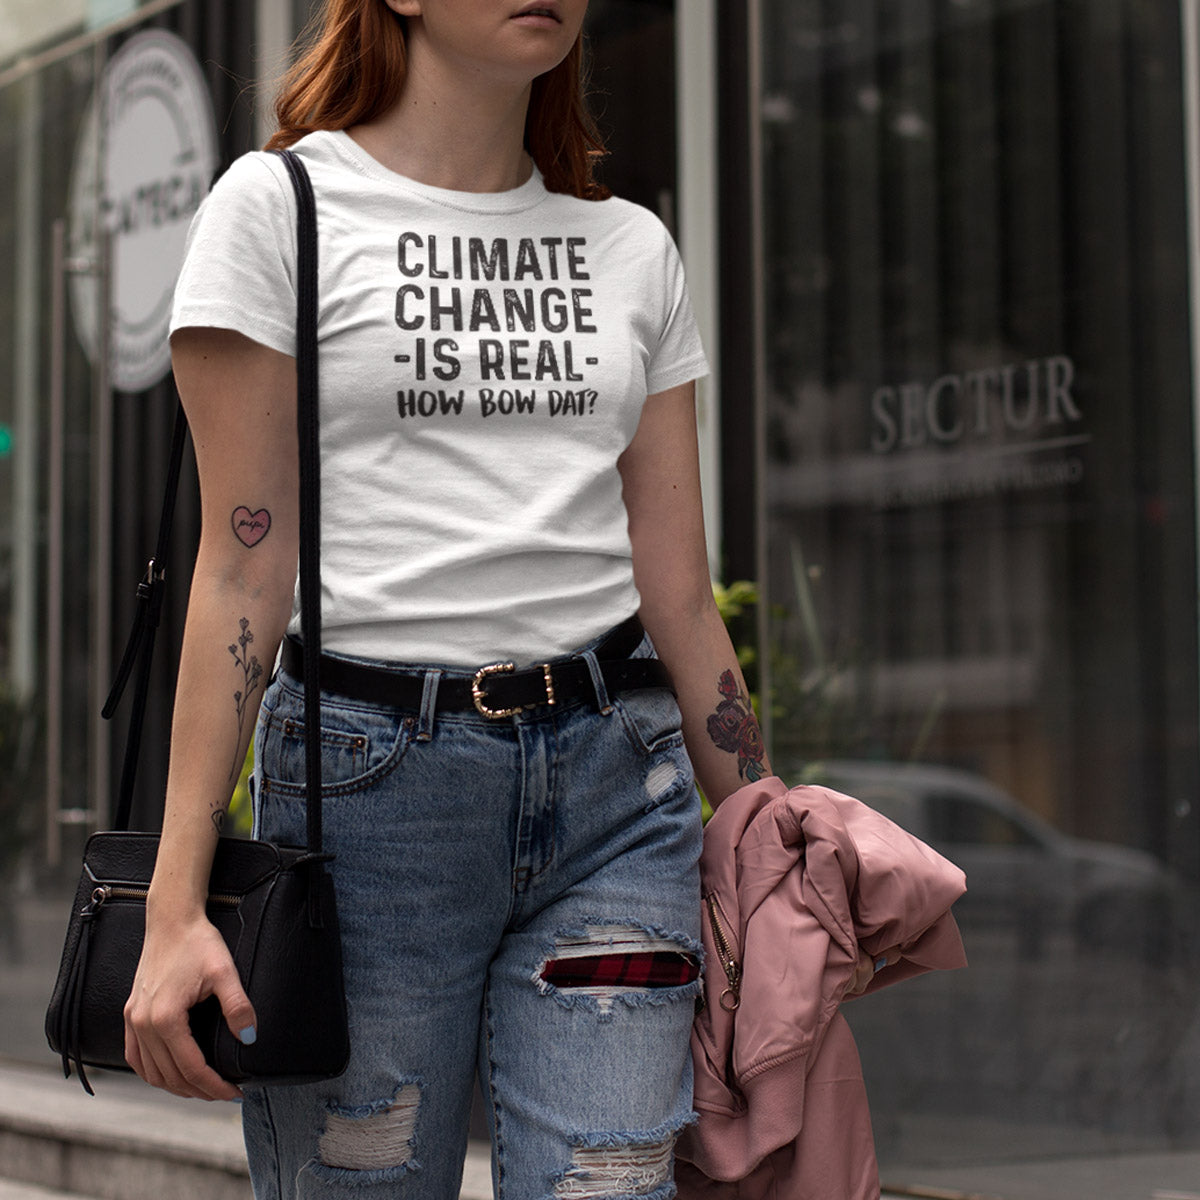 Climate Change is Real - How Bow Dat? Ladies' Boyfriend T-Shirt - pipercleo.com